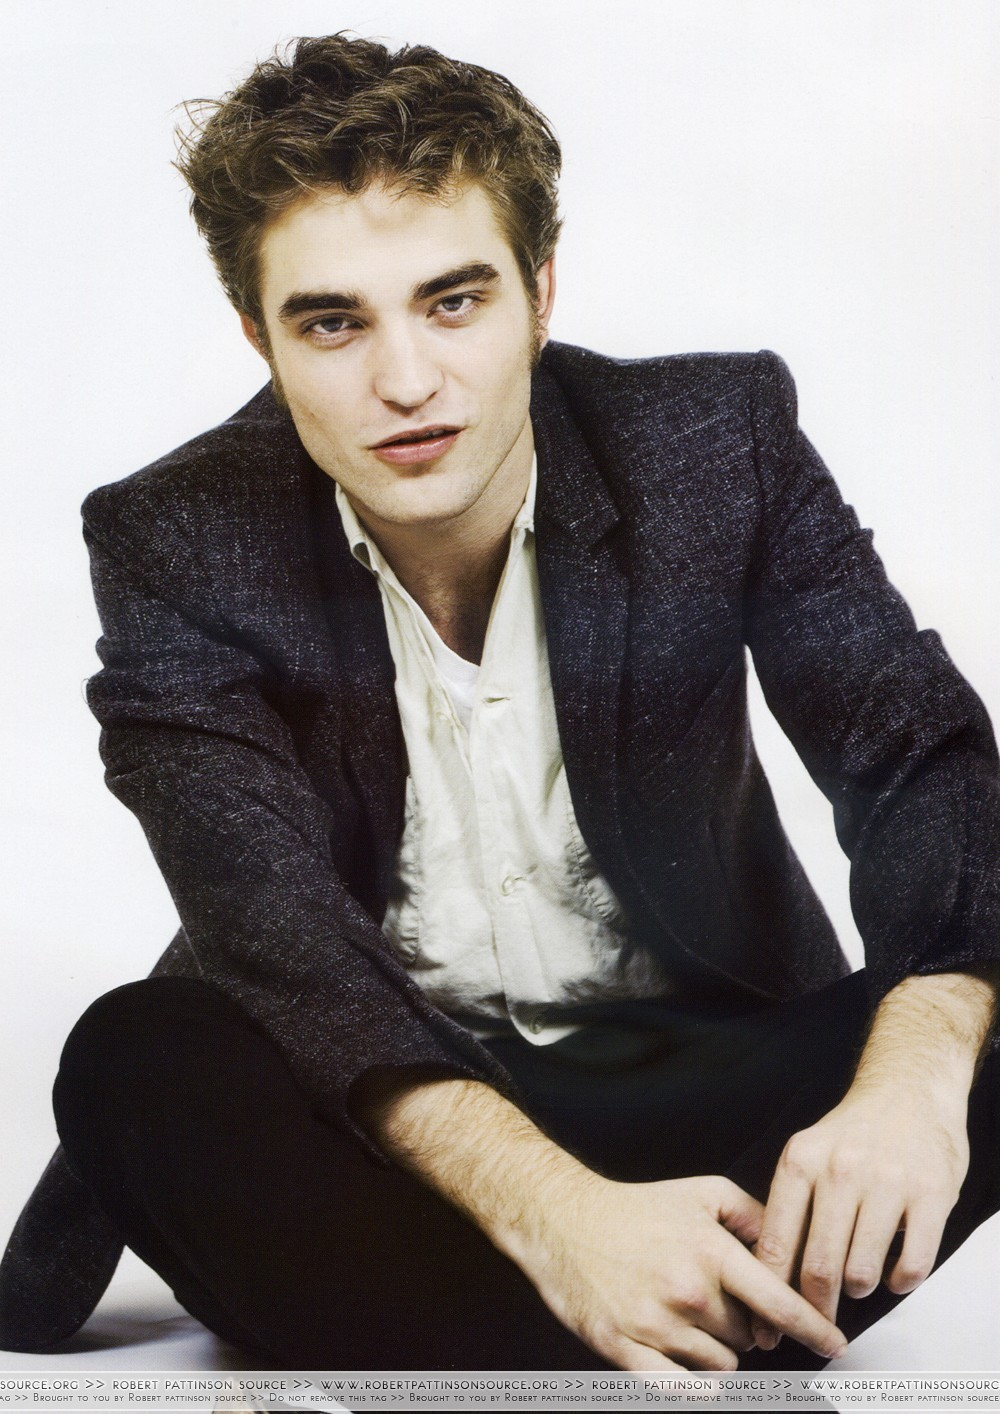 Awesome Cute Wallpapers For Android Robert Pattinson Wallpaper Desktop Wallpapers